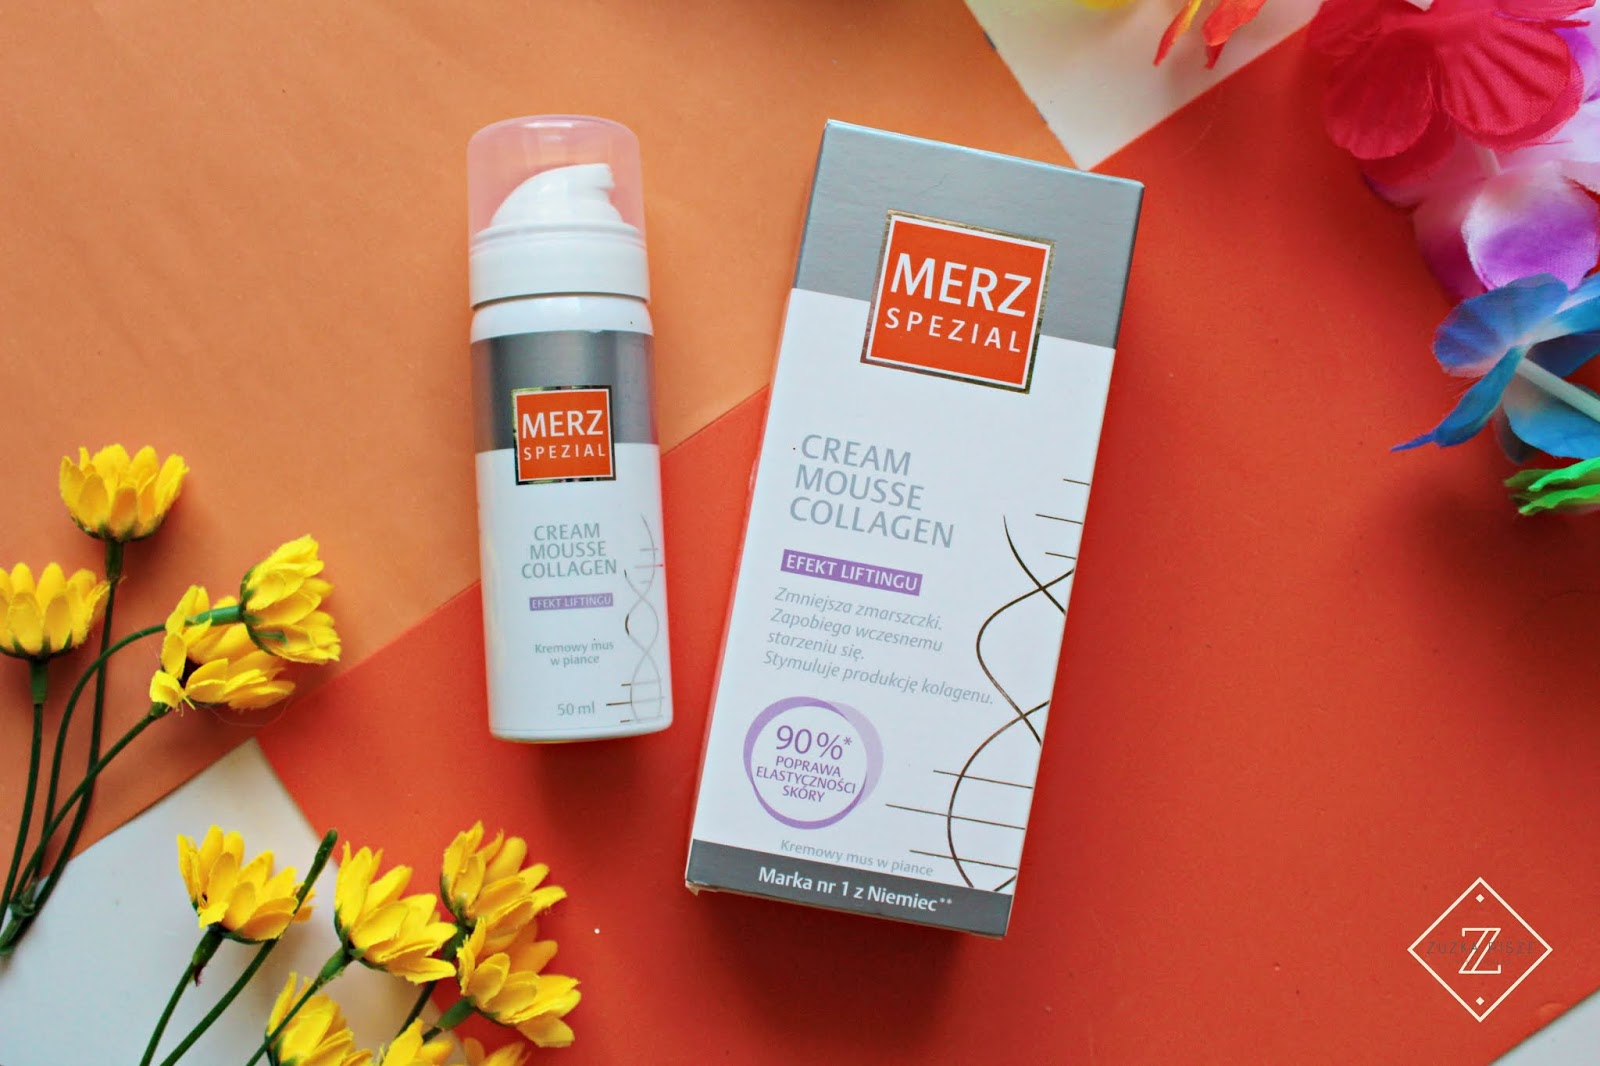 MERZ SPEZIAL CREAM MOUSSE COLLAGEN